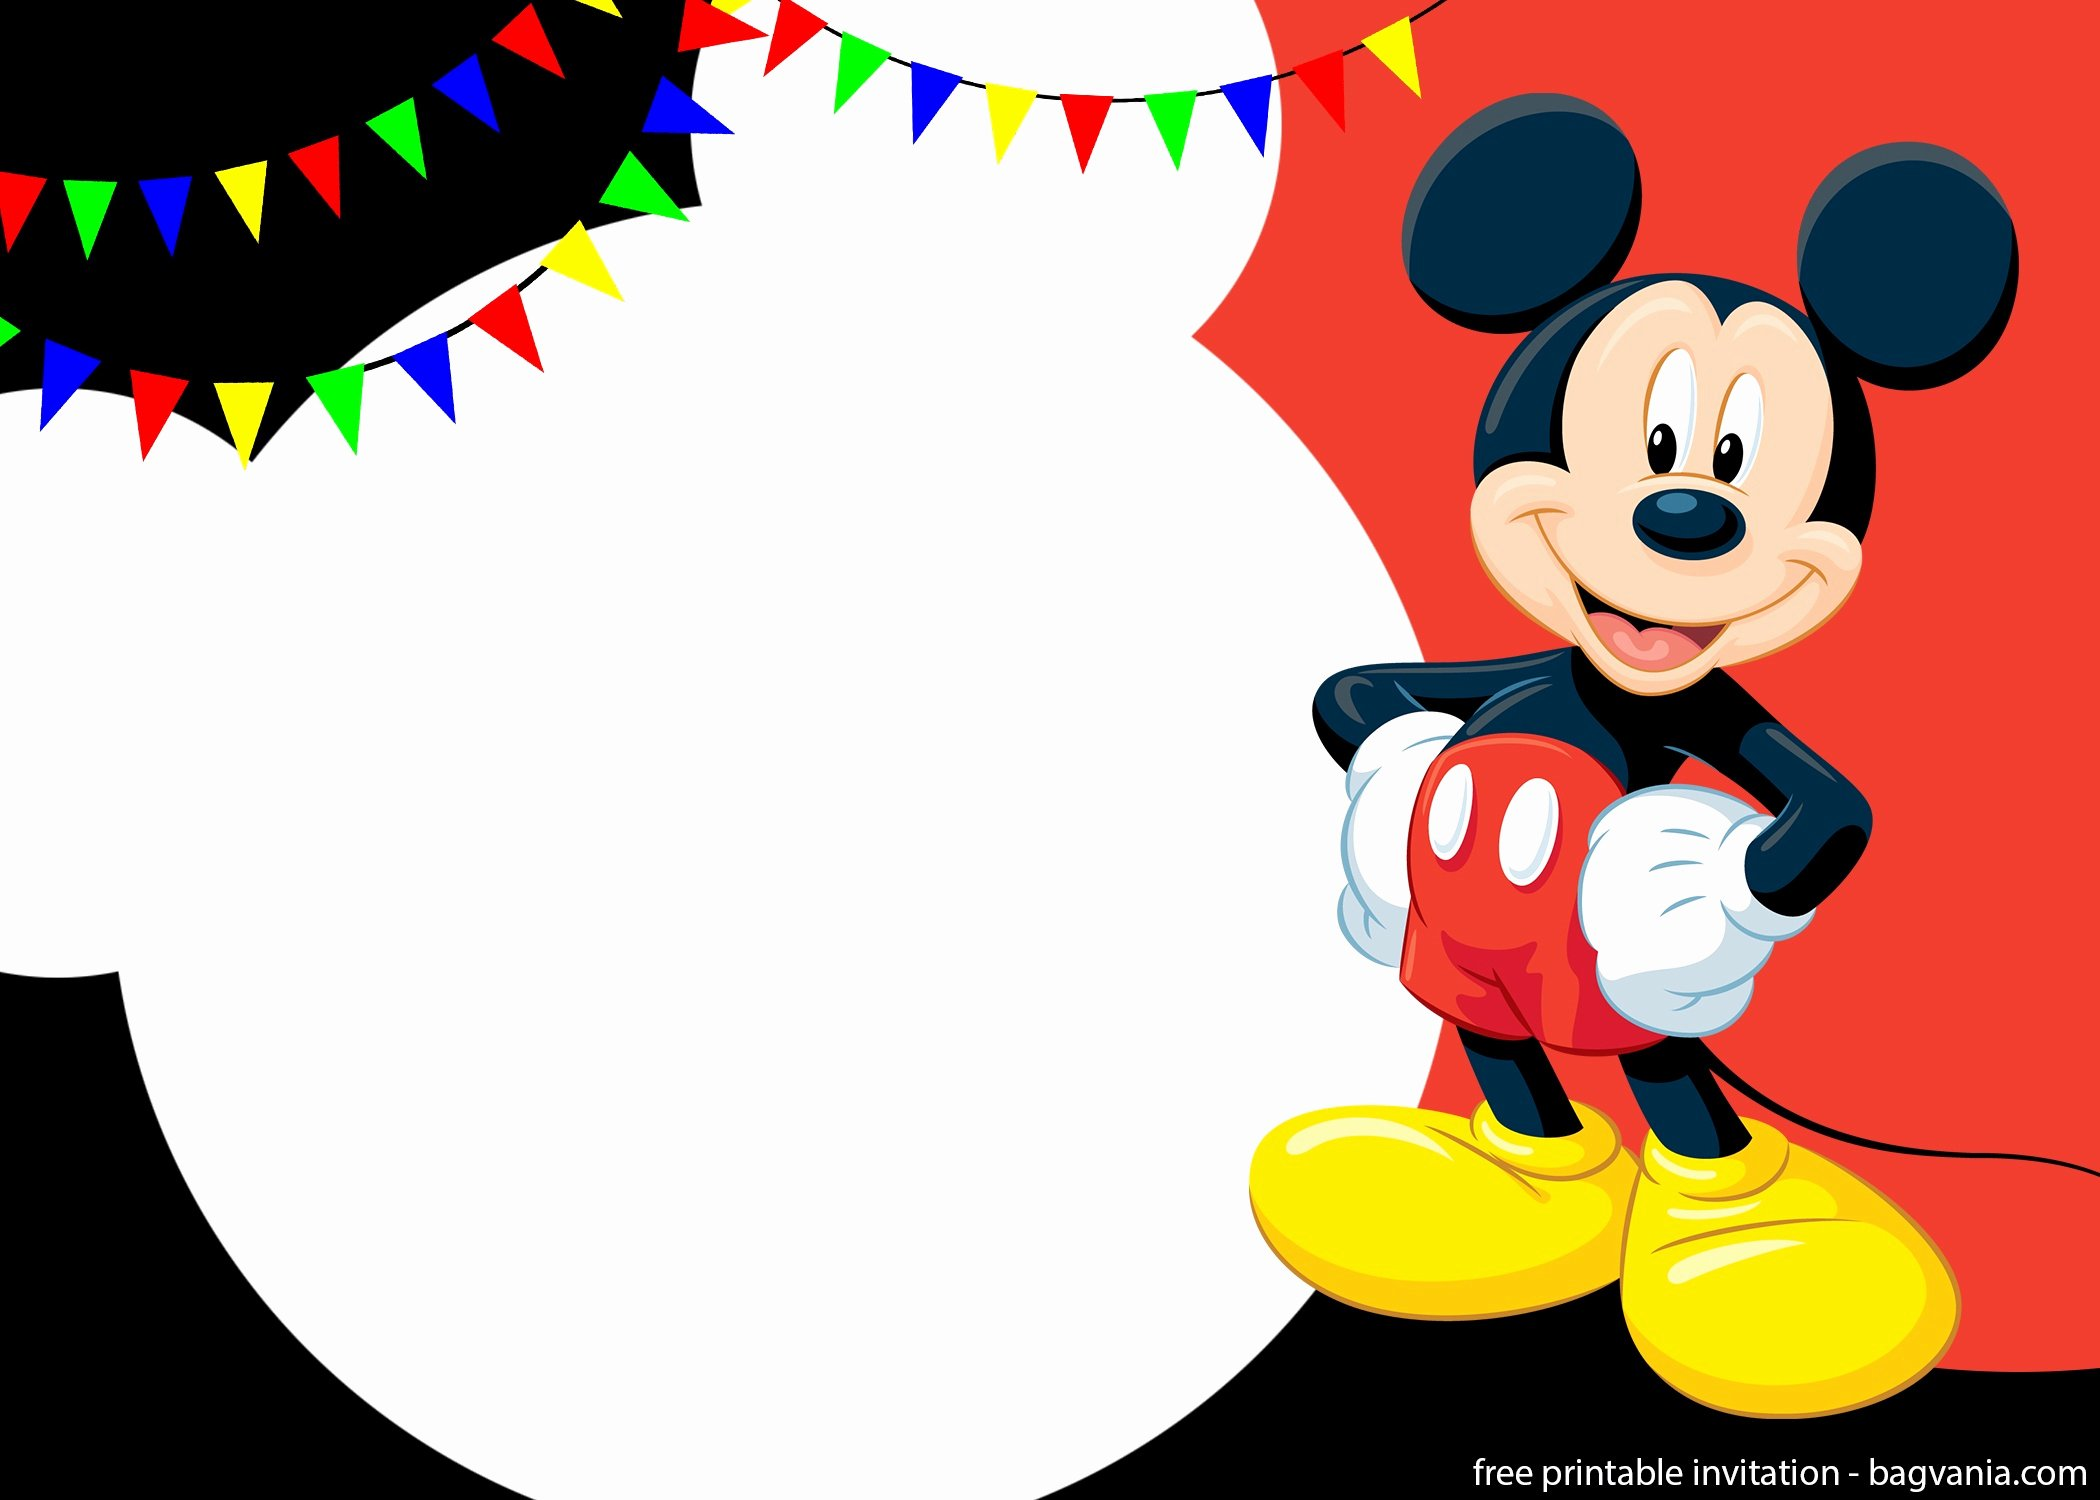 Mickey Mouse Invitations Templates Inspirational Free Printable Cute Mickey Mouse Invitation Templates – Free Printable Birthday Invitation